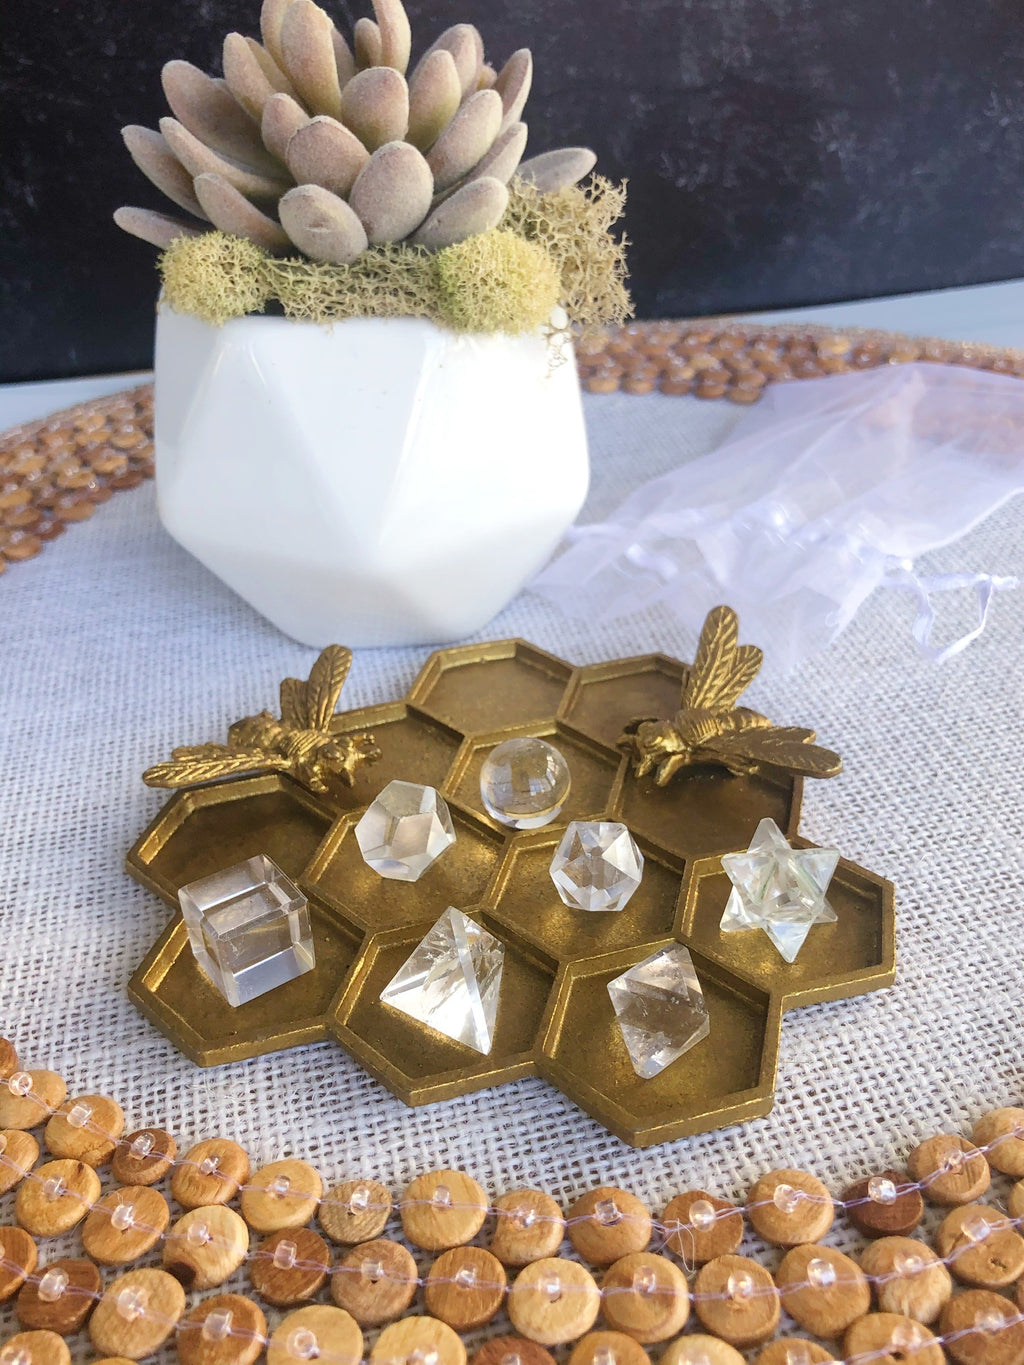 Crystal Sacred Geometry 7 Piece Platonic Solids Sets